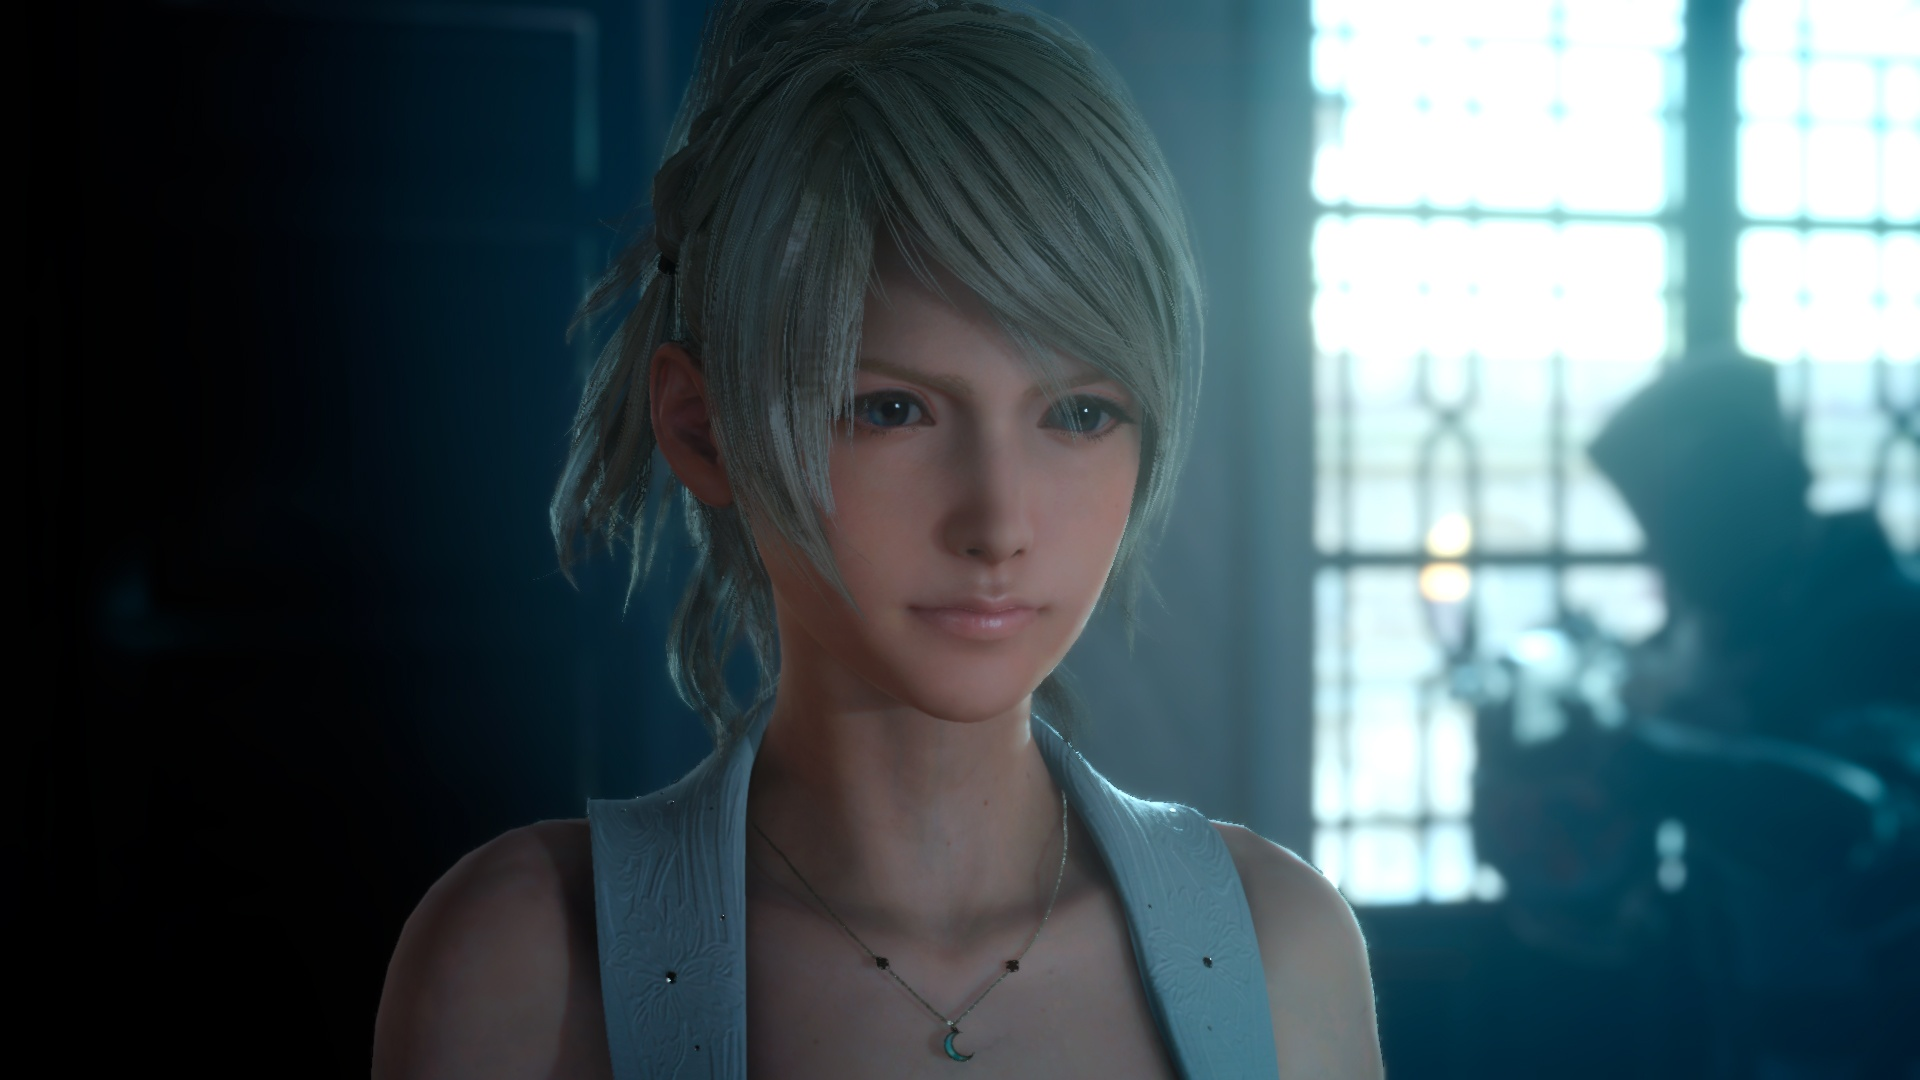 Final Fantasy Xv Hd Wallpapers Free Download: Final Fantasy XV HD Wallpapers Free Download